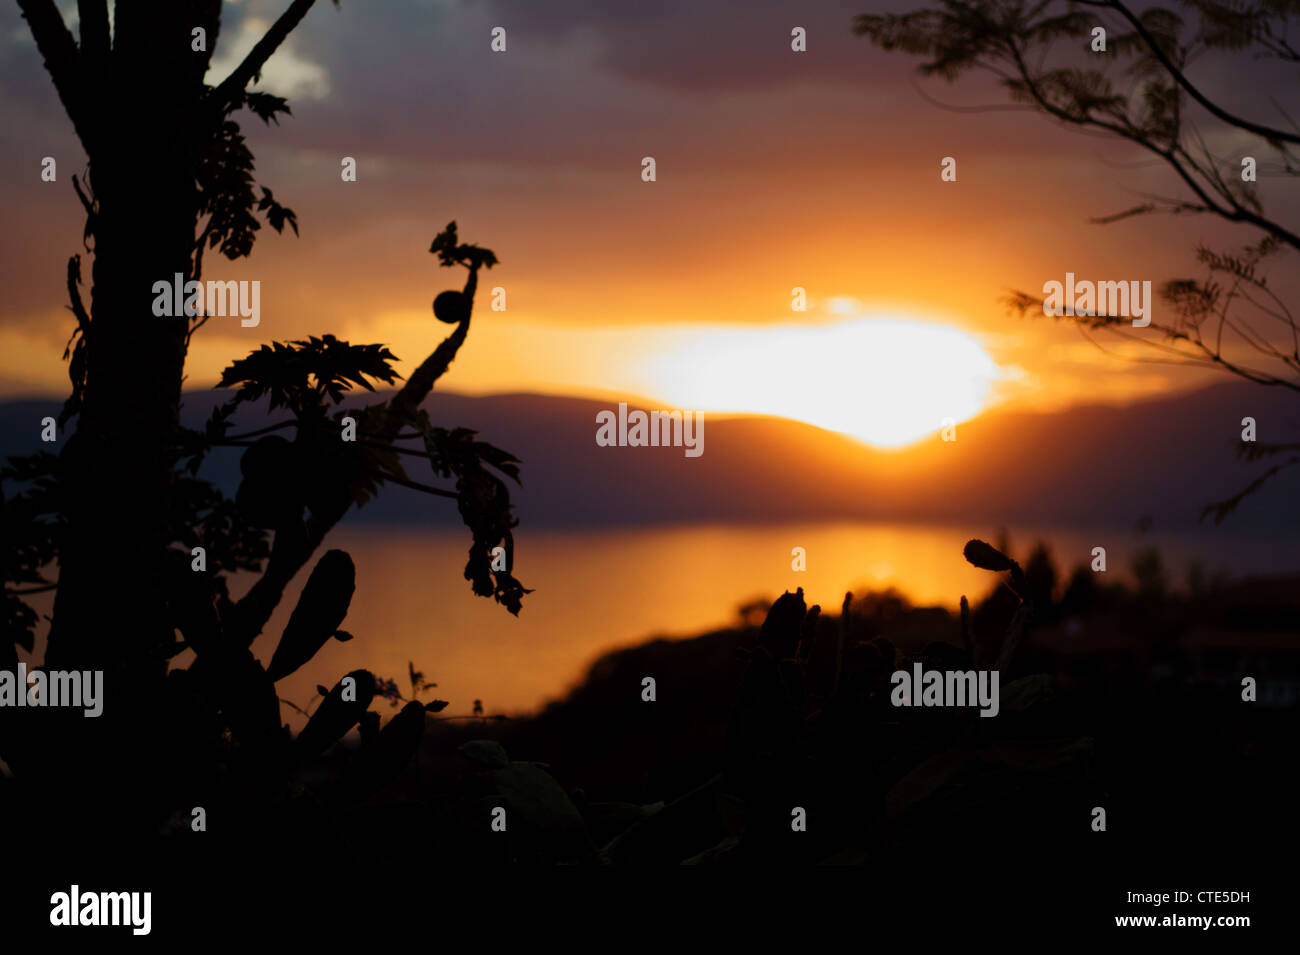 Rising sun in Mexico - Stock Image